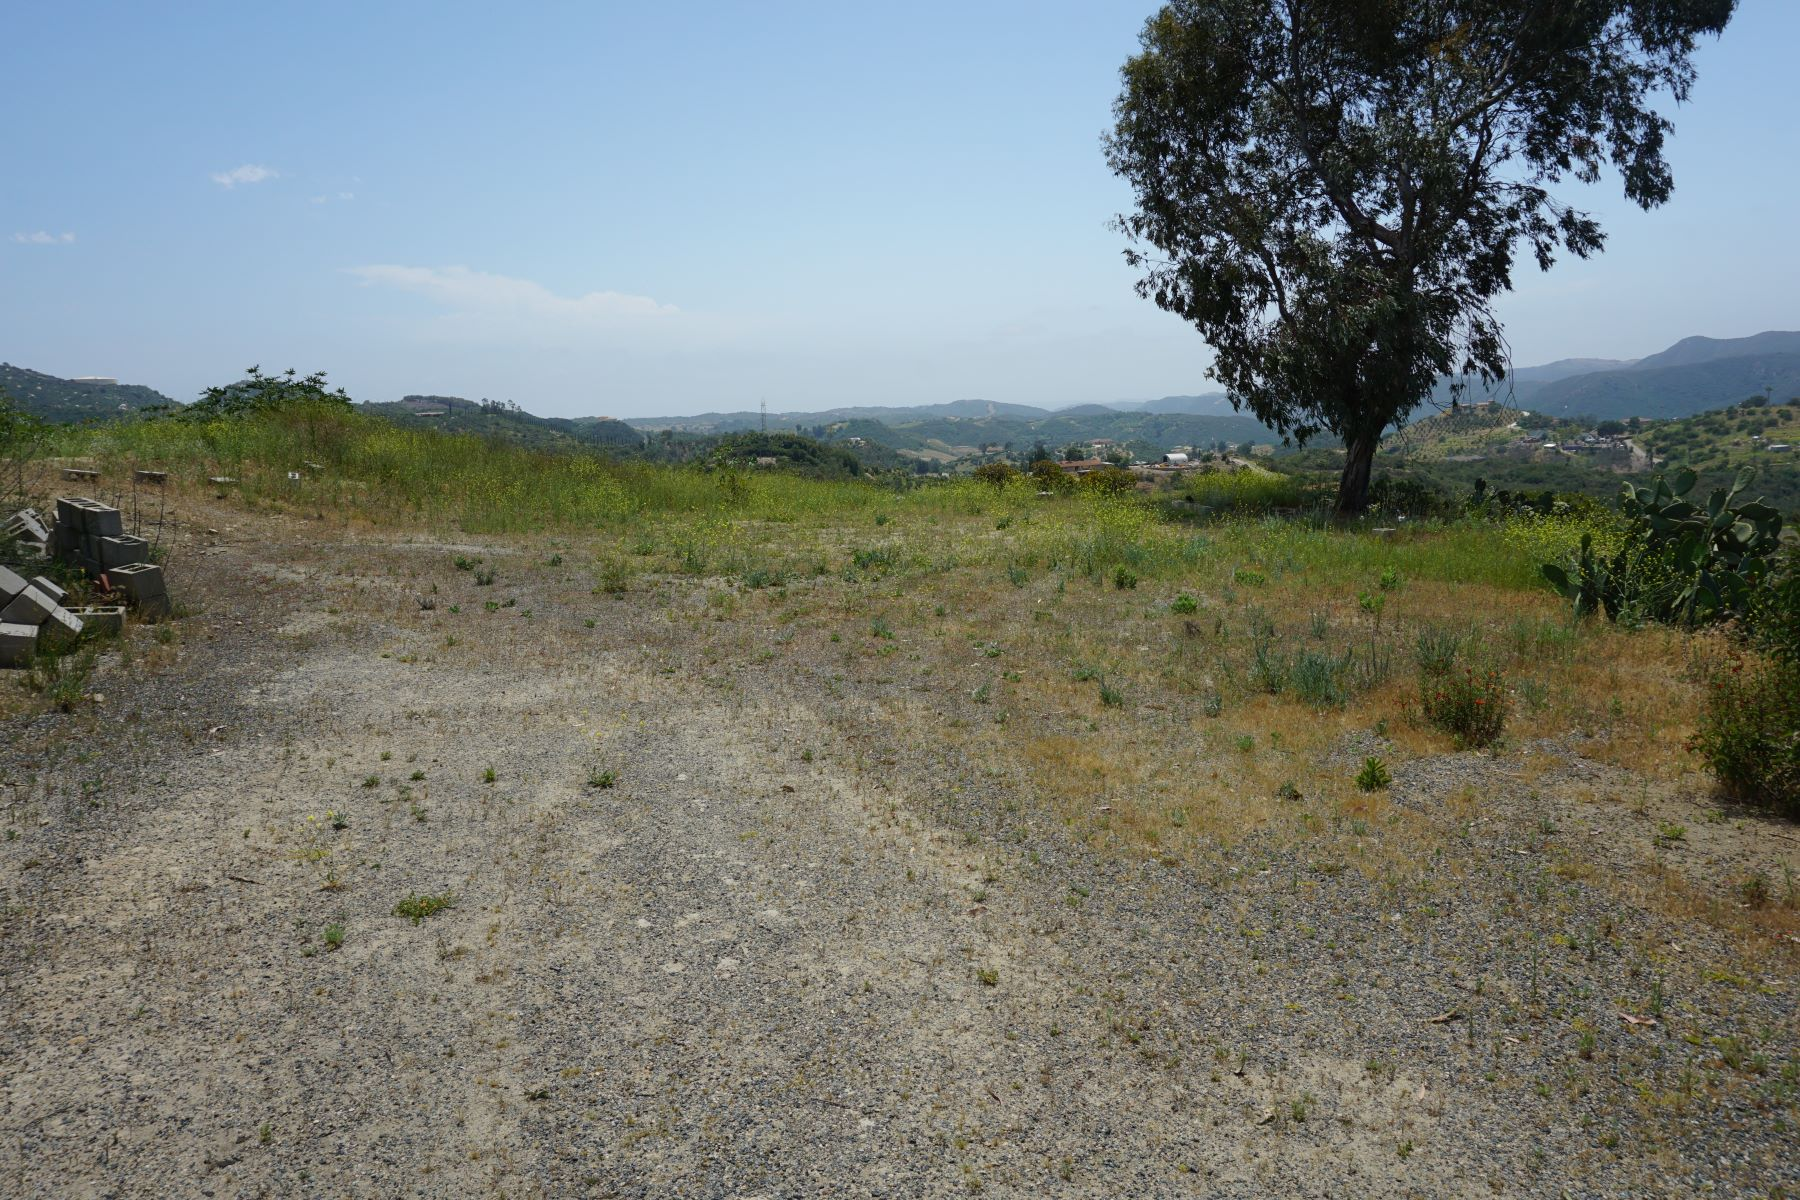 Land for Sale at Lot in Fallbrook with Views! 2251 Glenn Road 08 Fallbrook, California 92028 United States